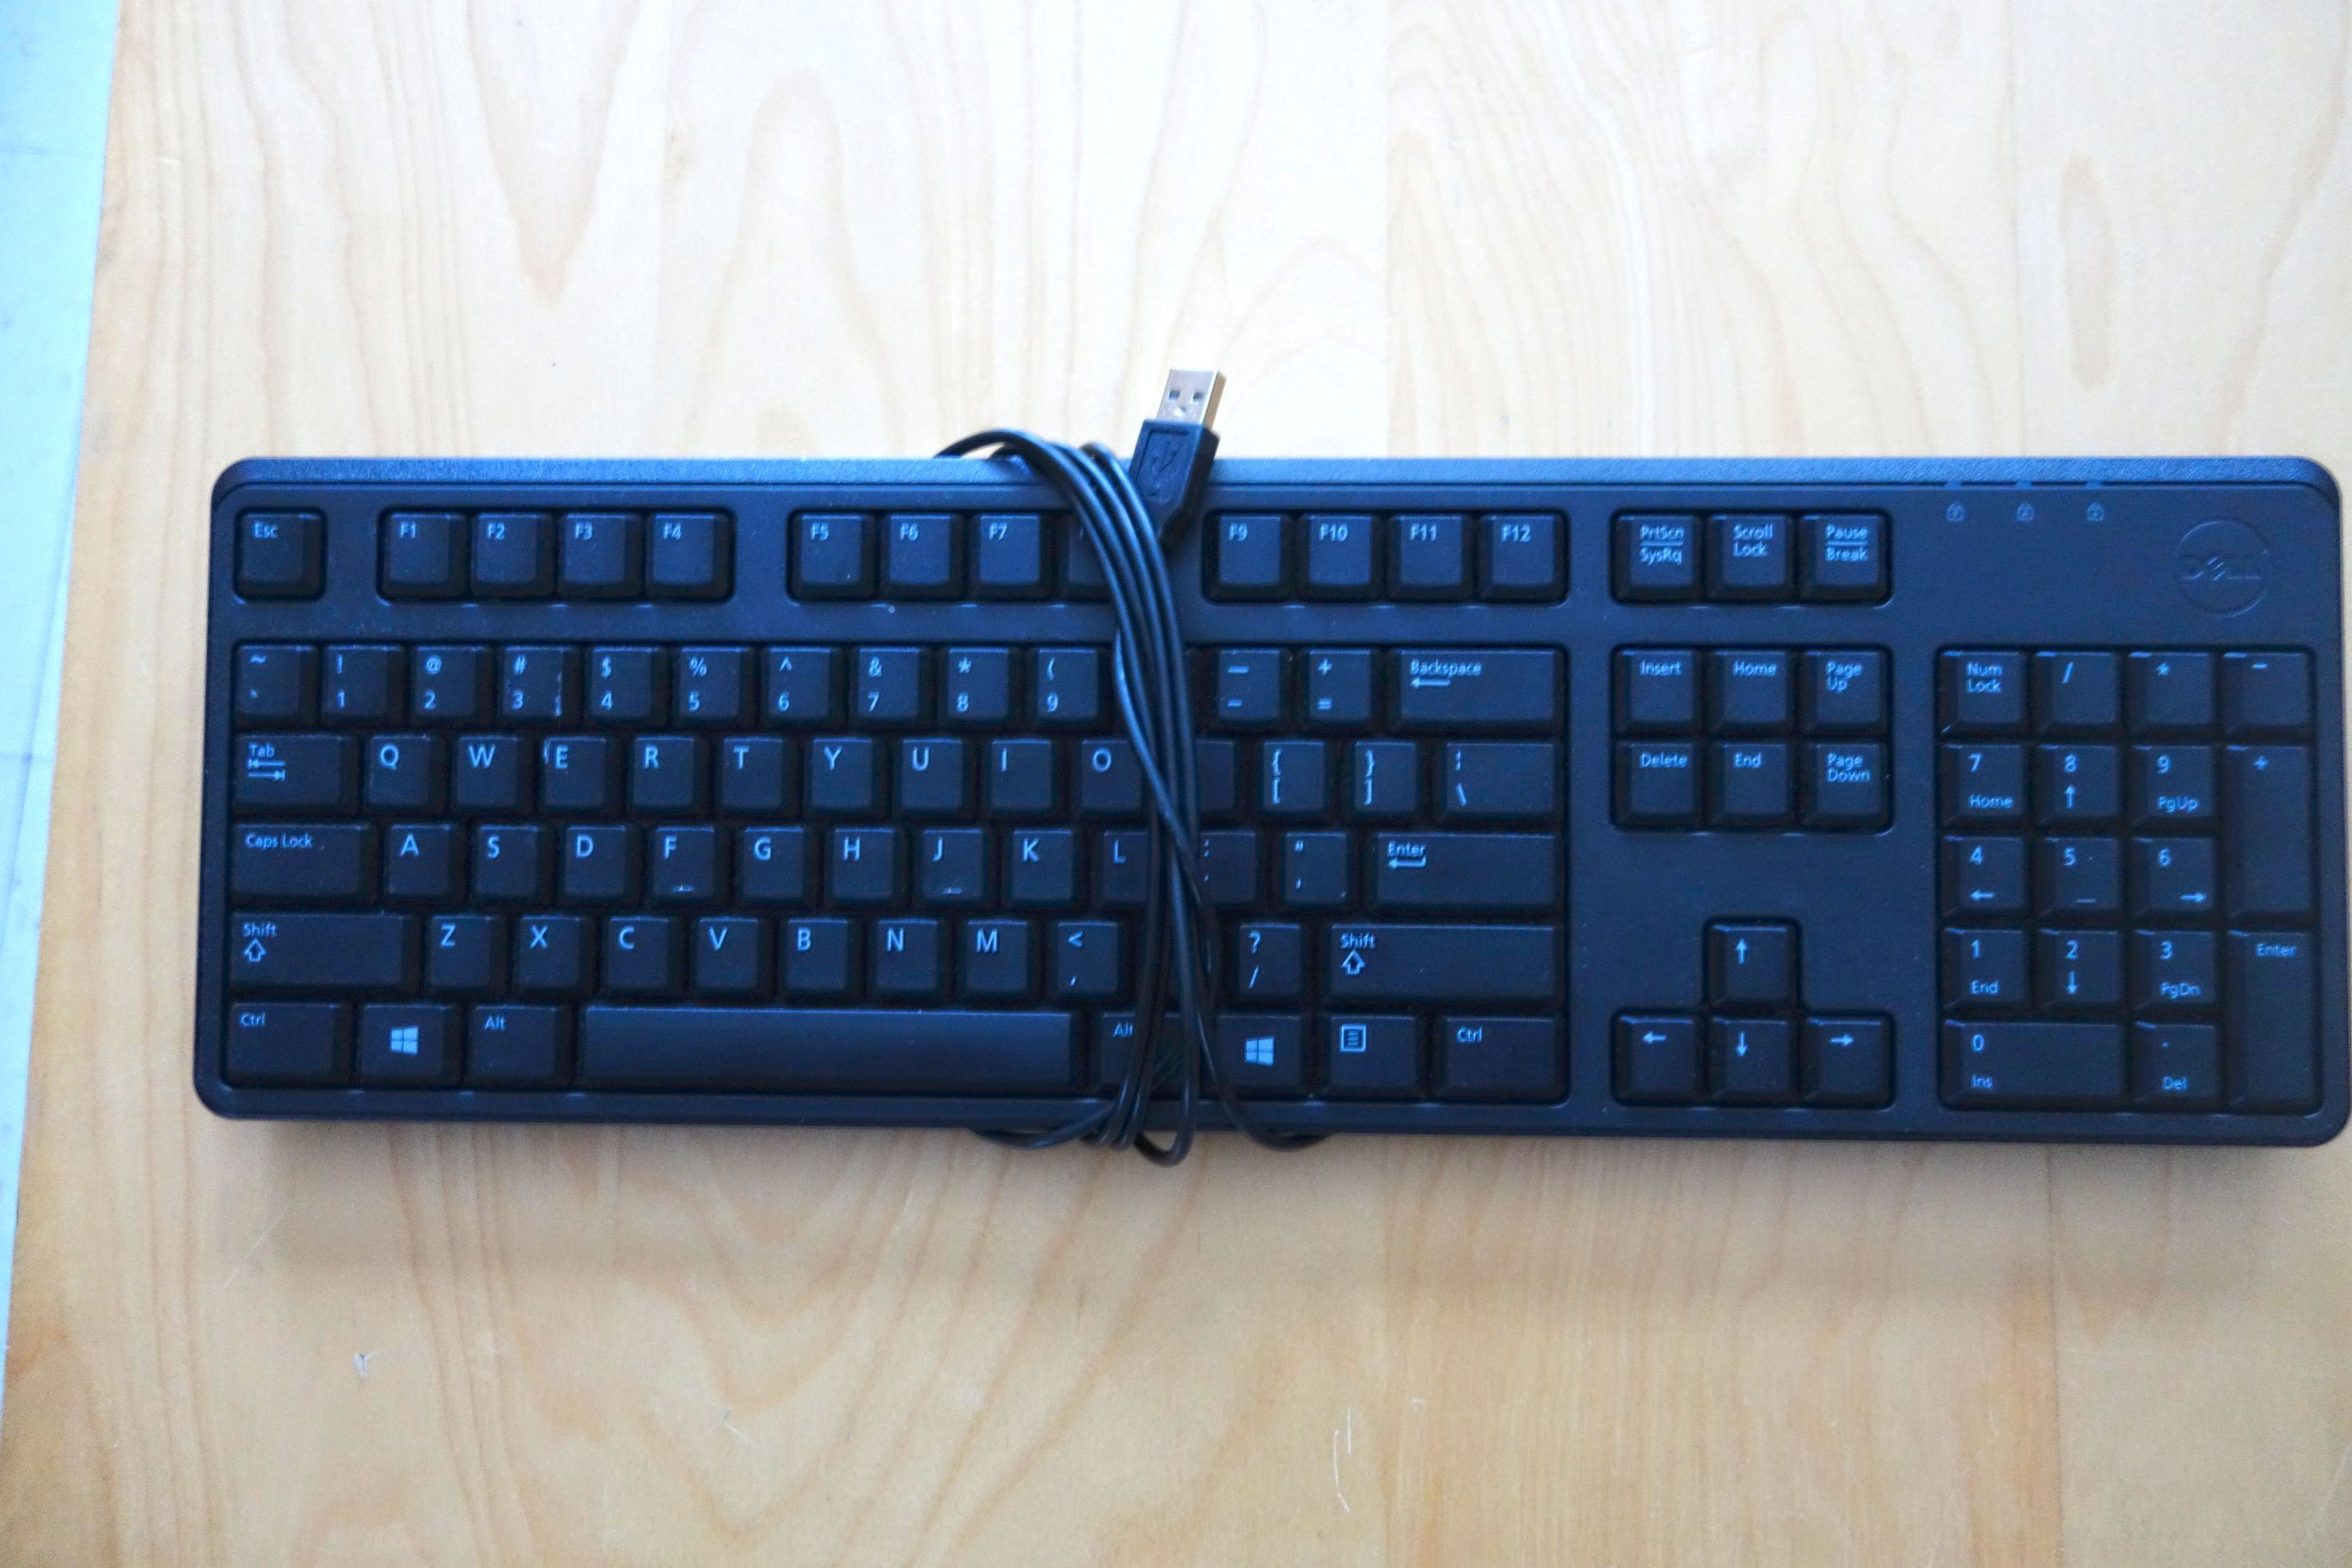 The Most Basic Of Keyboards But Still An Un Used Keyboard Still